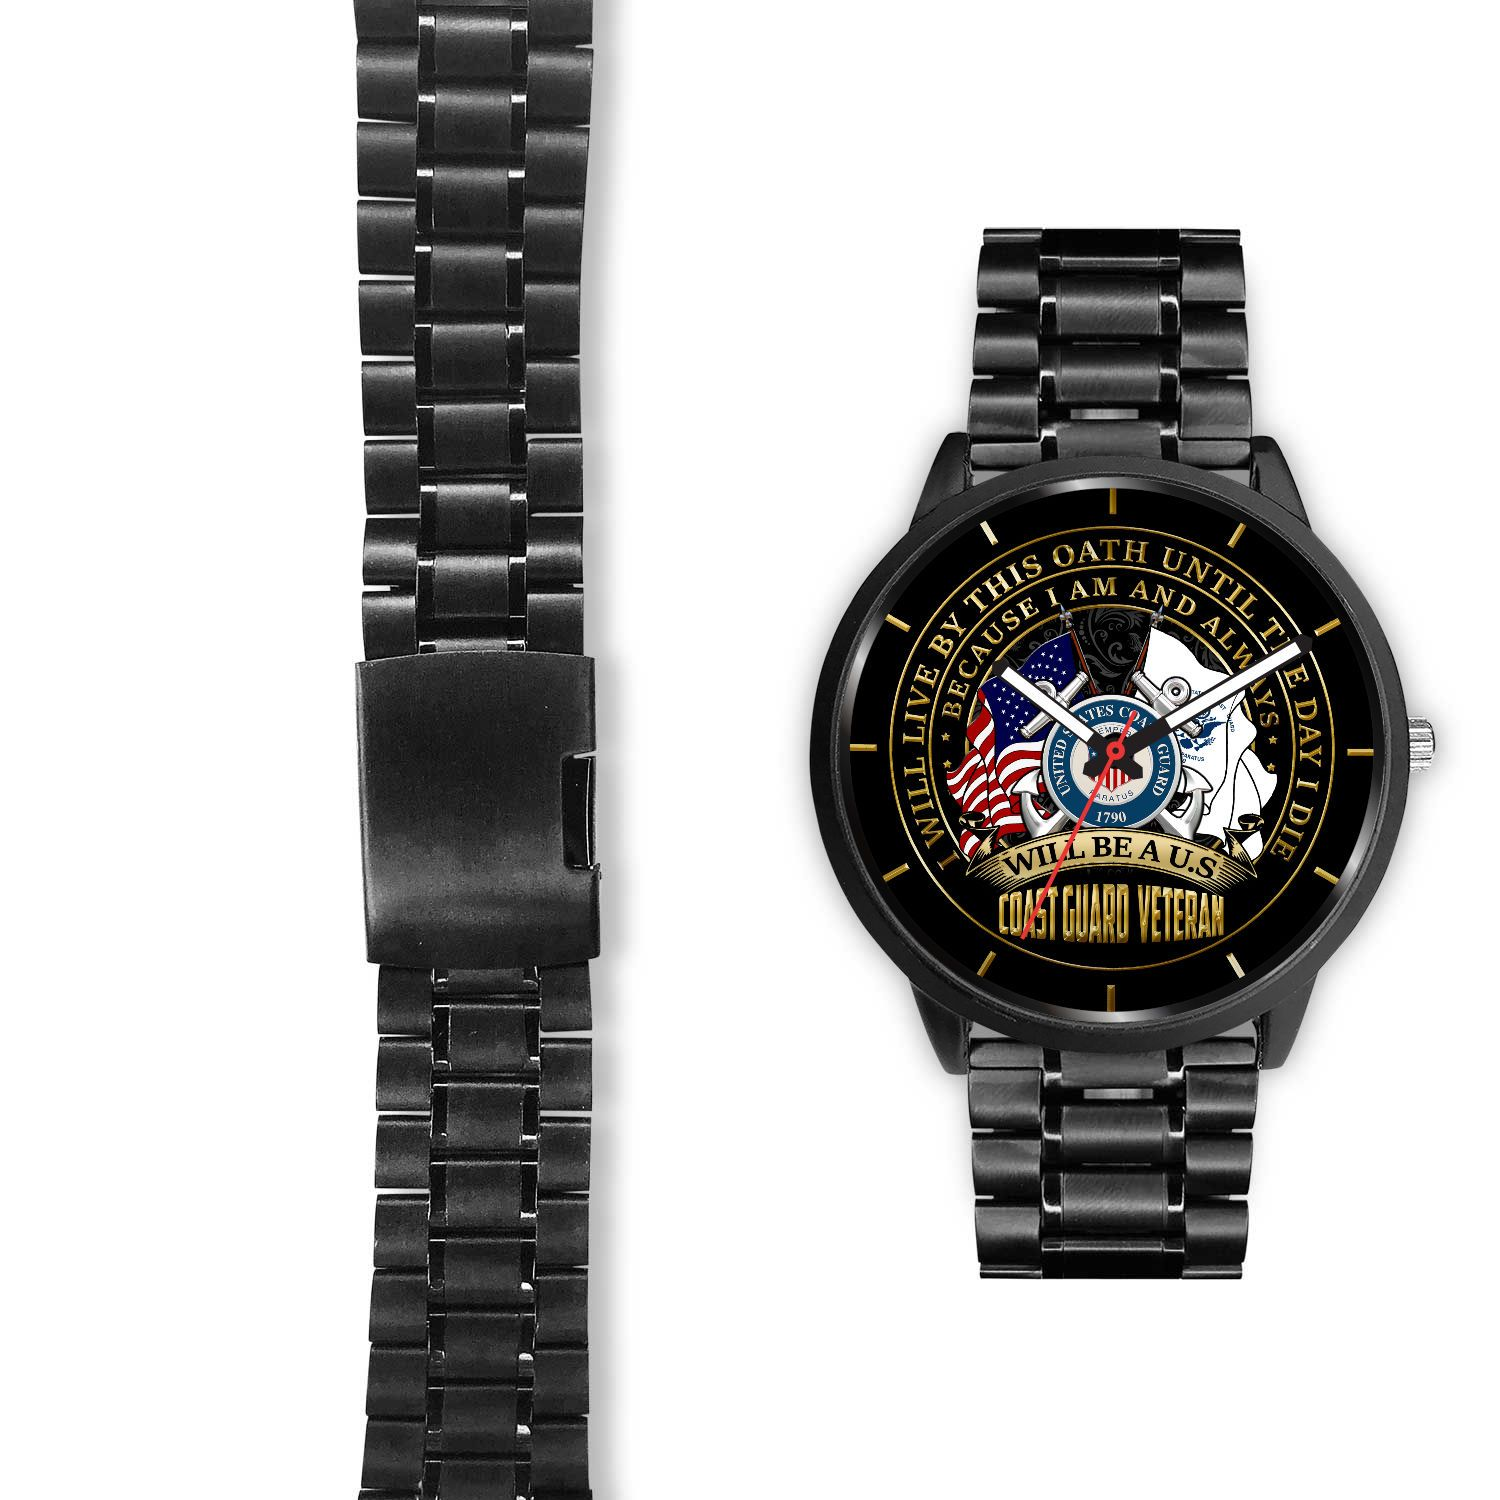 i-will-live_e5f001c3-0a19-802e-d909-55a54b430b2f I WILL LIVE BY THIS OATH UNTIL THE DAY I DIE BECAUSE I AM AND ALWAYS WILL BE A U.S COAST GUARD VETERAN WATCH  %tag